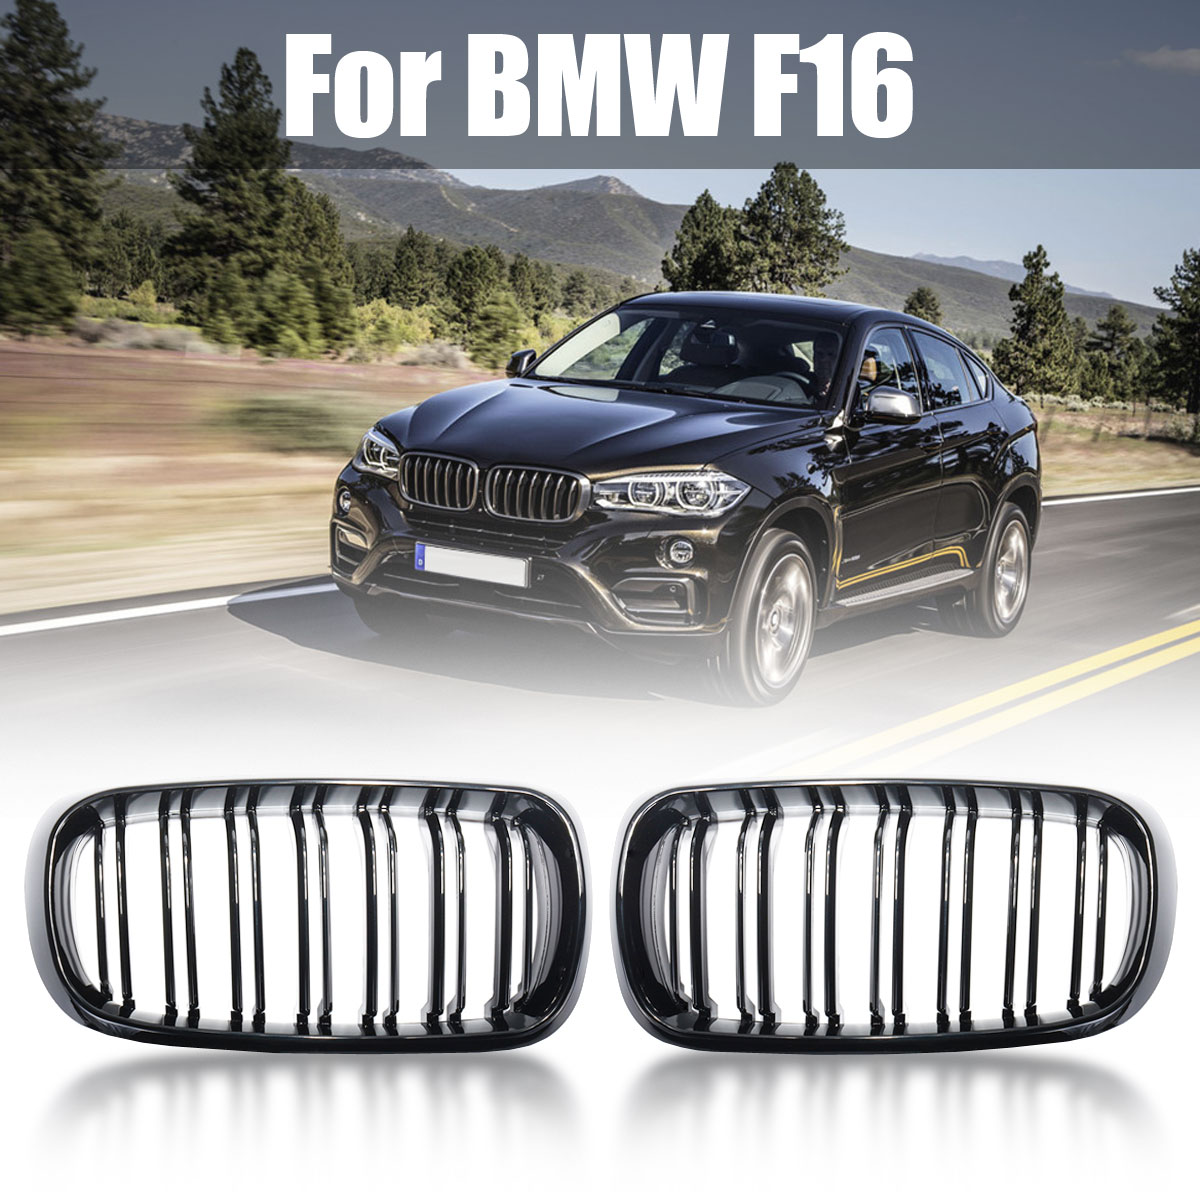 1 Pair New ABS Replacement Gloss/Matte Black 2 Double Slat Line Front Kidney Sport Grill Grille For BMW F15 F16 X5 X6 2014-2018 1pair matte black double slat kidney grille front grill for bmw e70 e71 model x5 x6 suv m sport xdrive 2008 2012 car styling